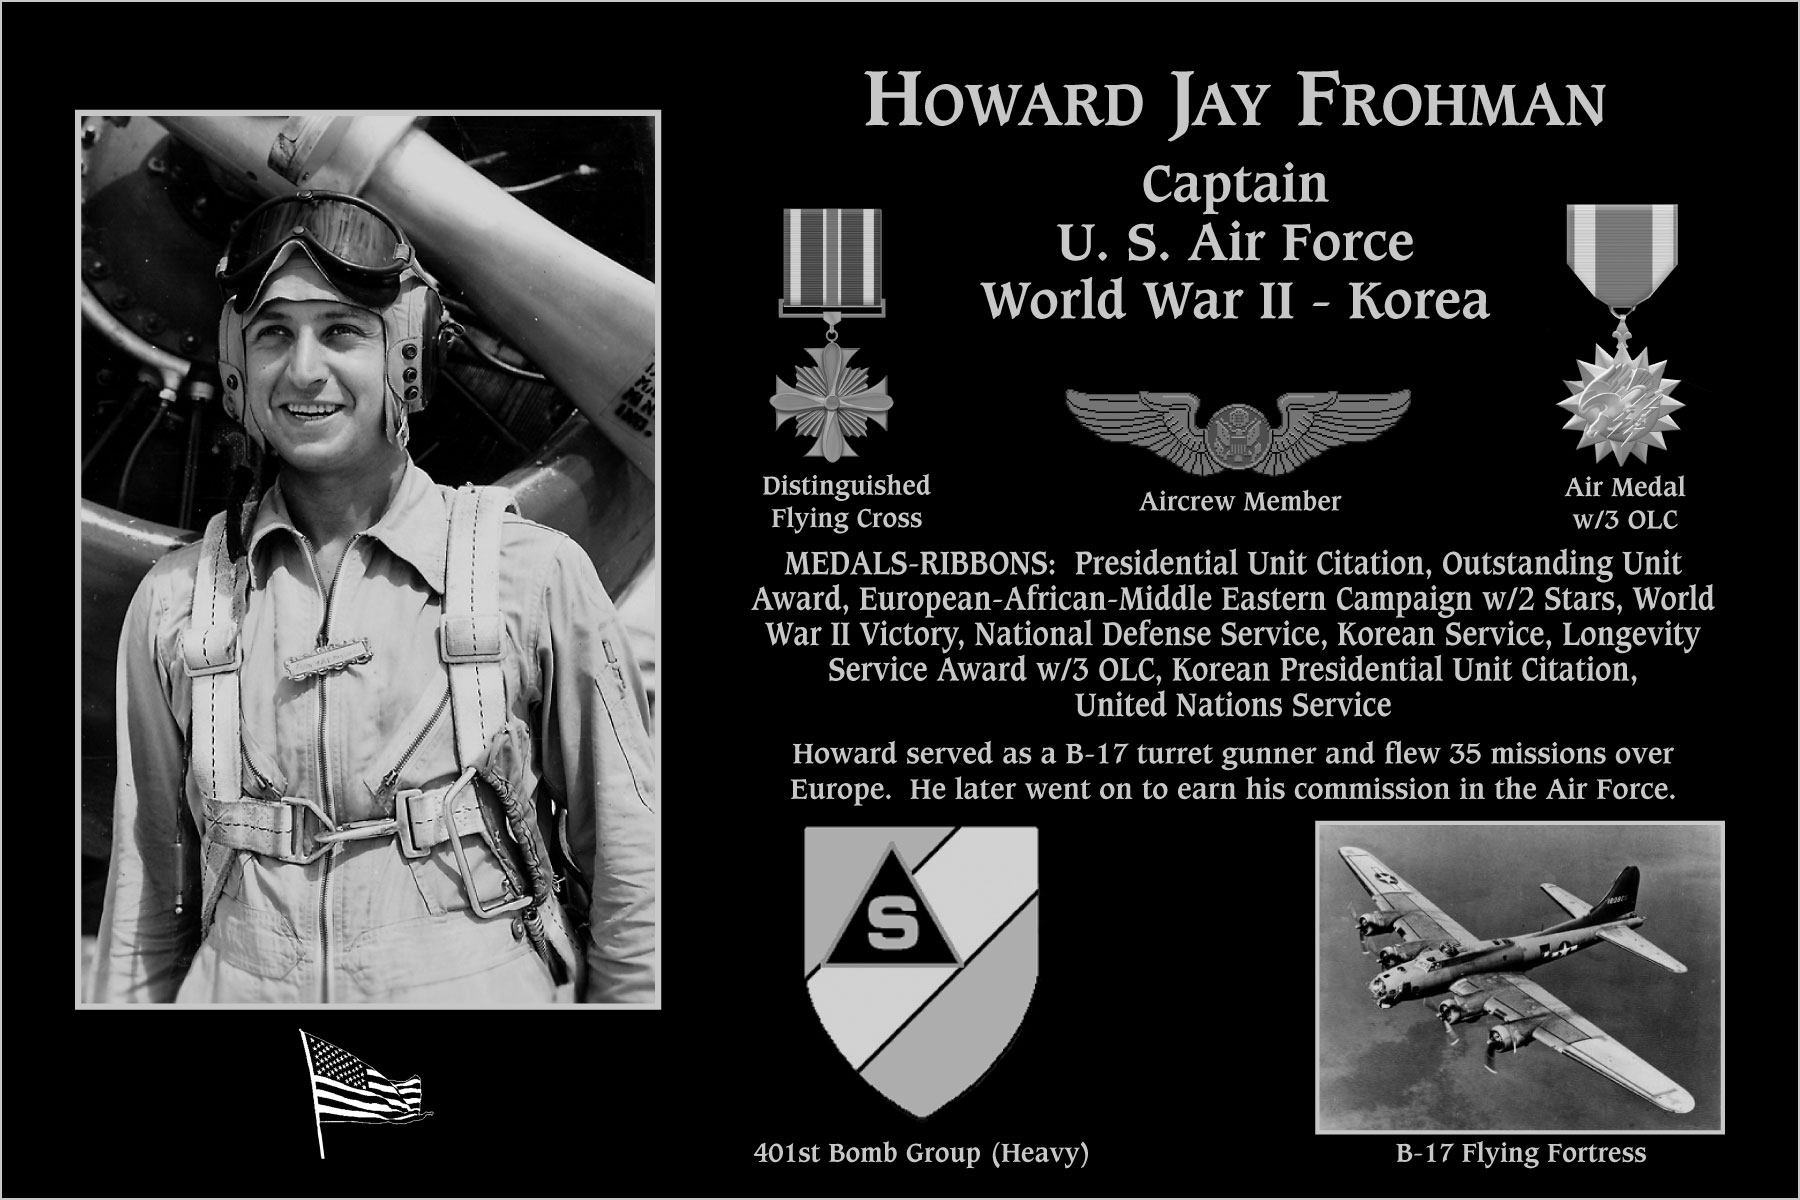 Howard J. Frohman